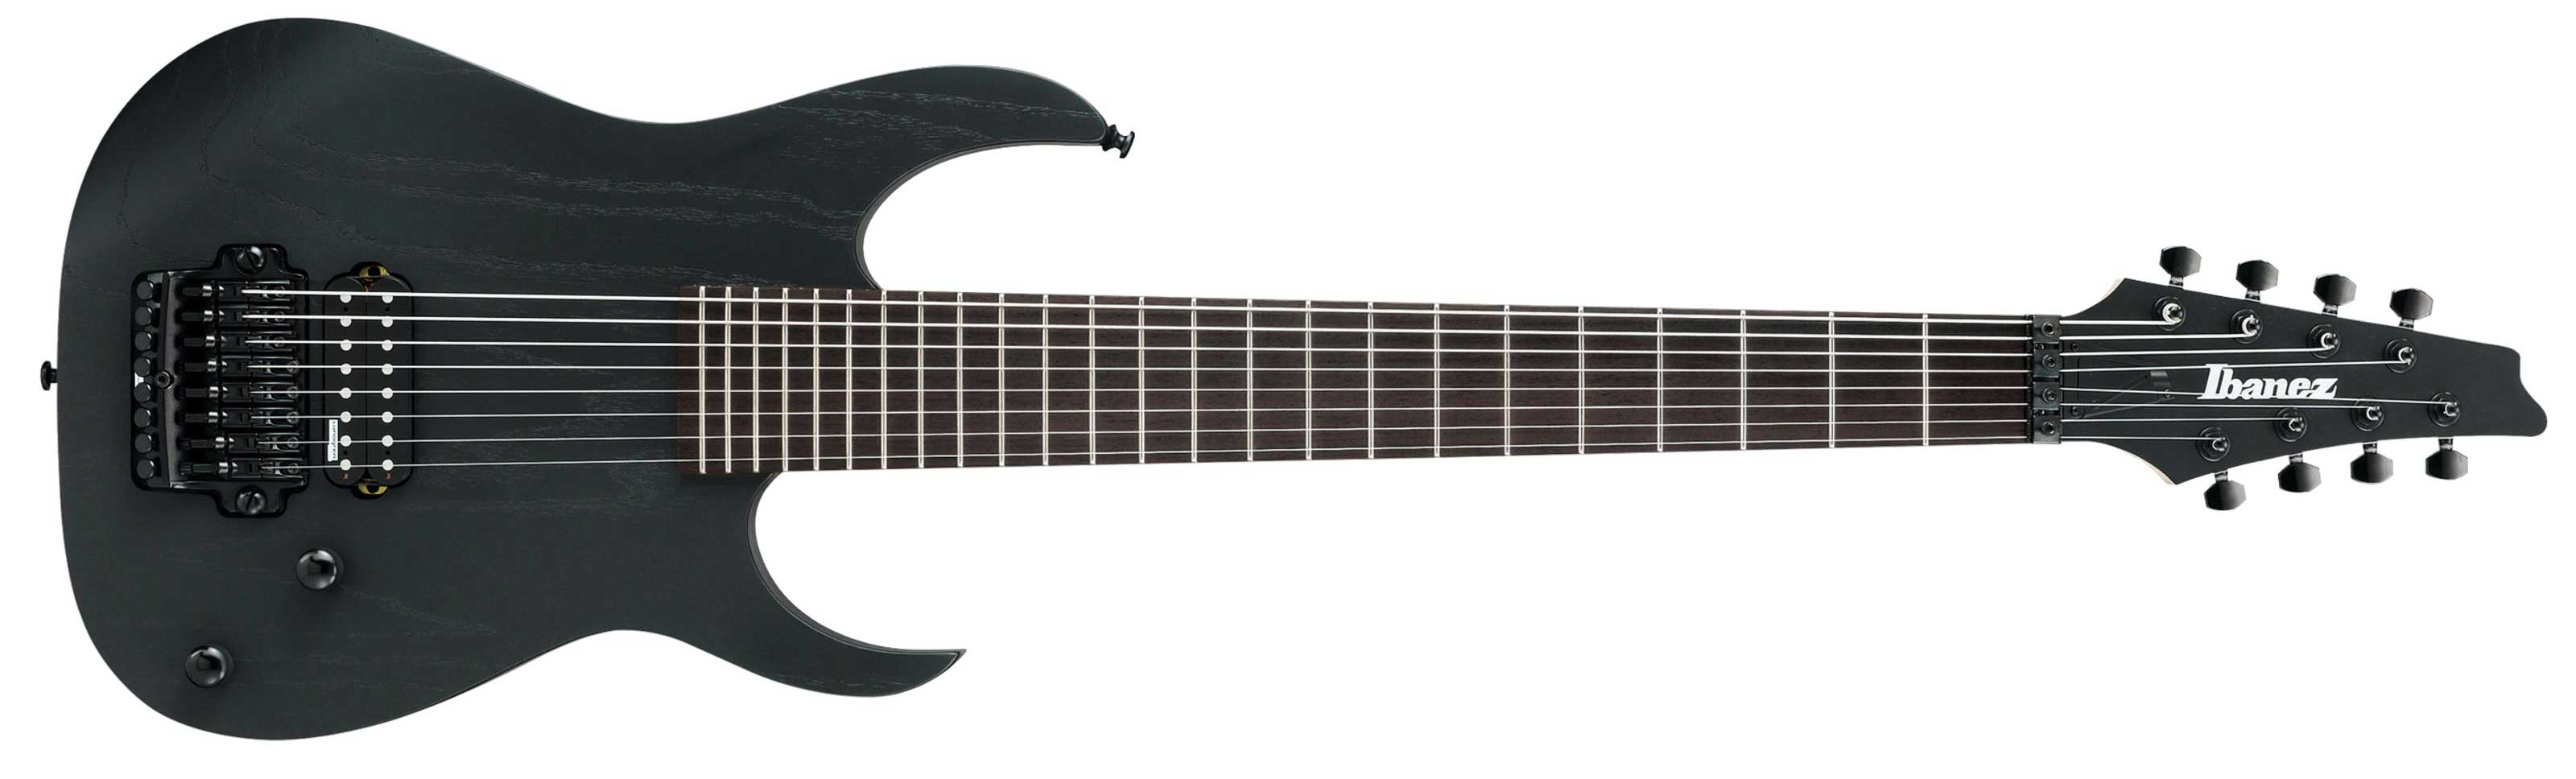 Ibanez M80M-WK Front